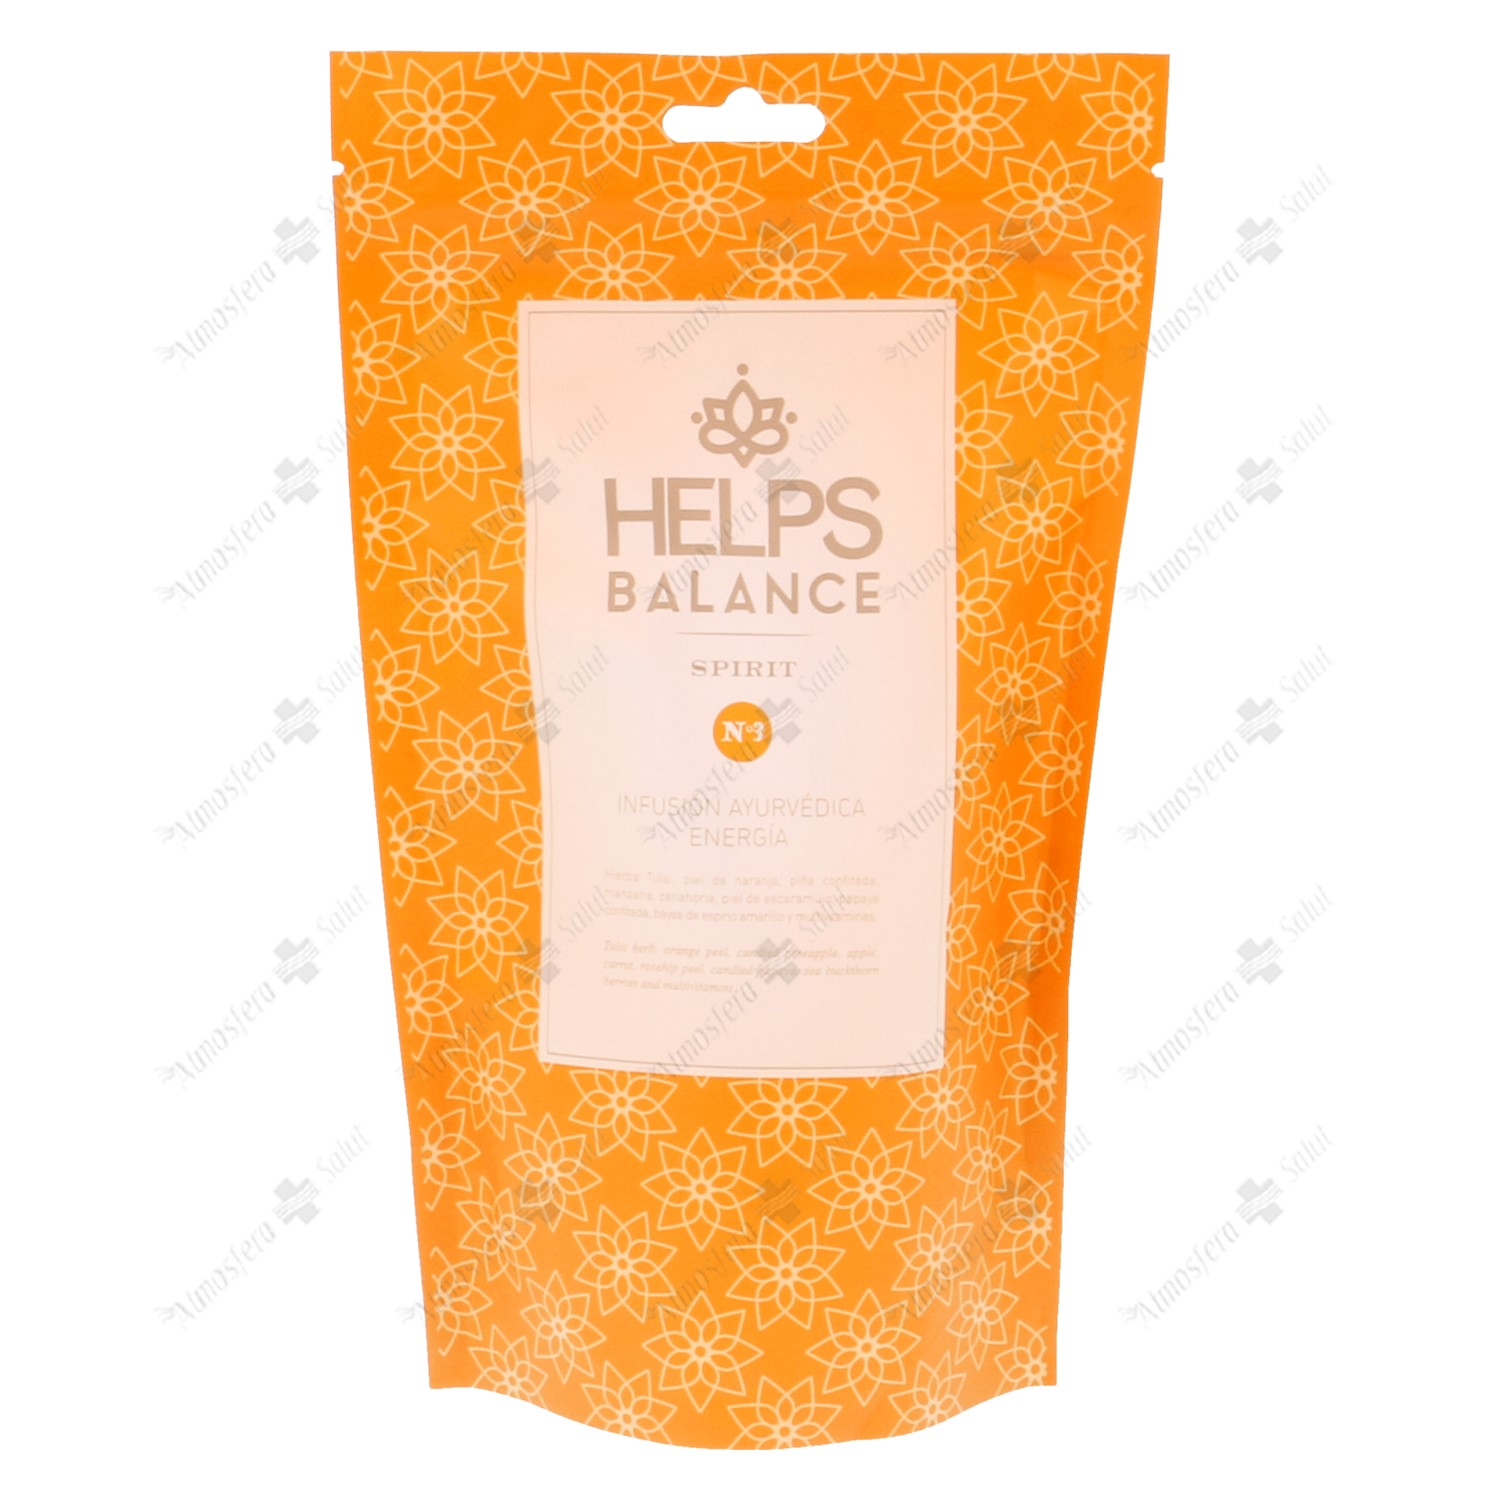 HELPS BALANCE SPIRIT Nº3 70 GR- 098554 -